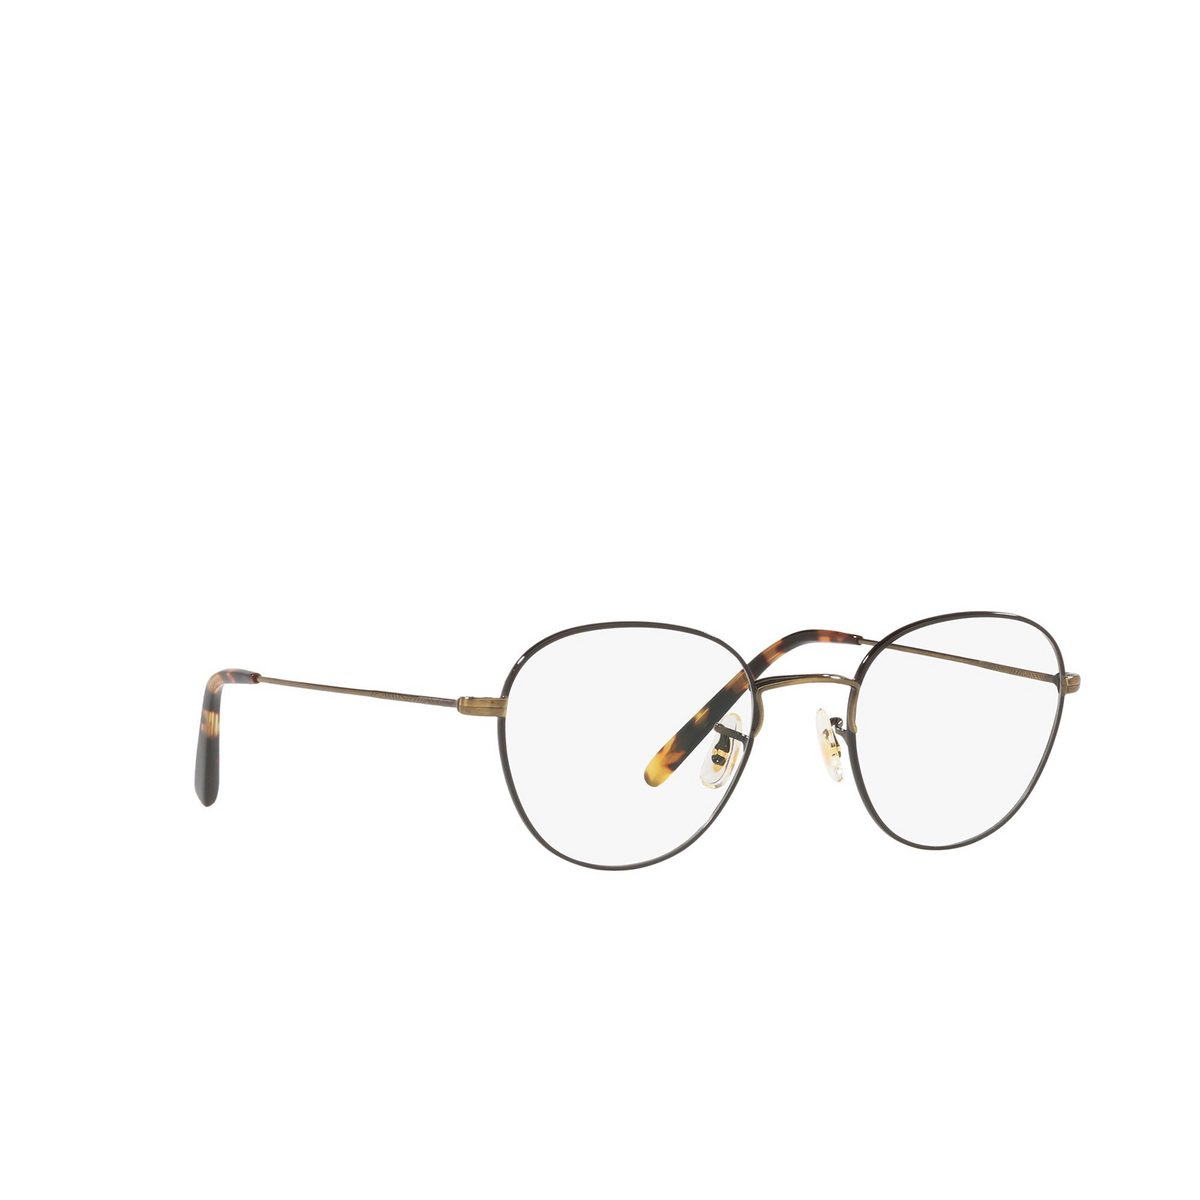 Oliver Peoples® Round Eyeglasses: Piercy OV1281 color Antique Gold / Black 5317 - three-quarters view.